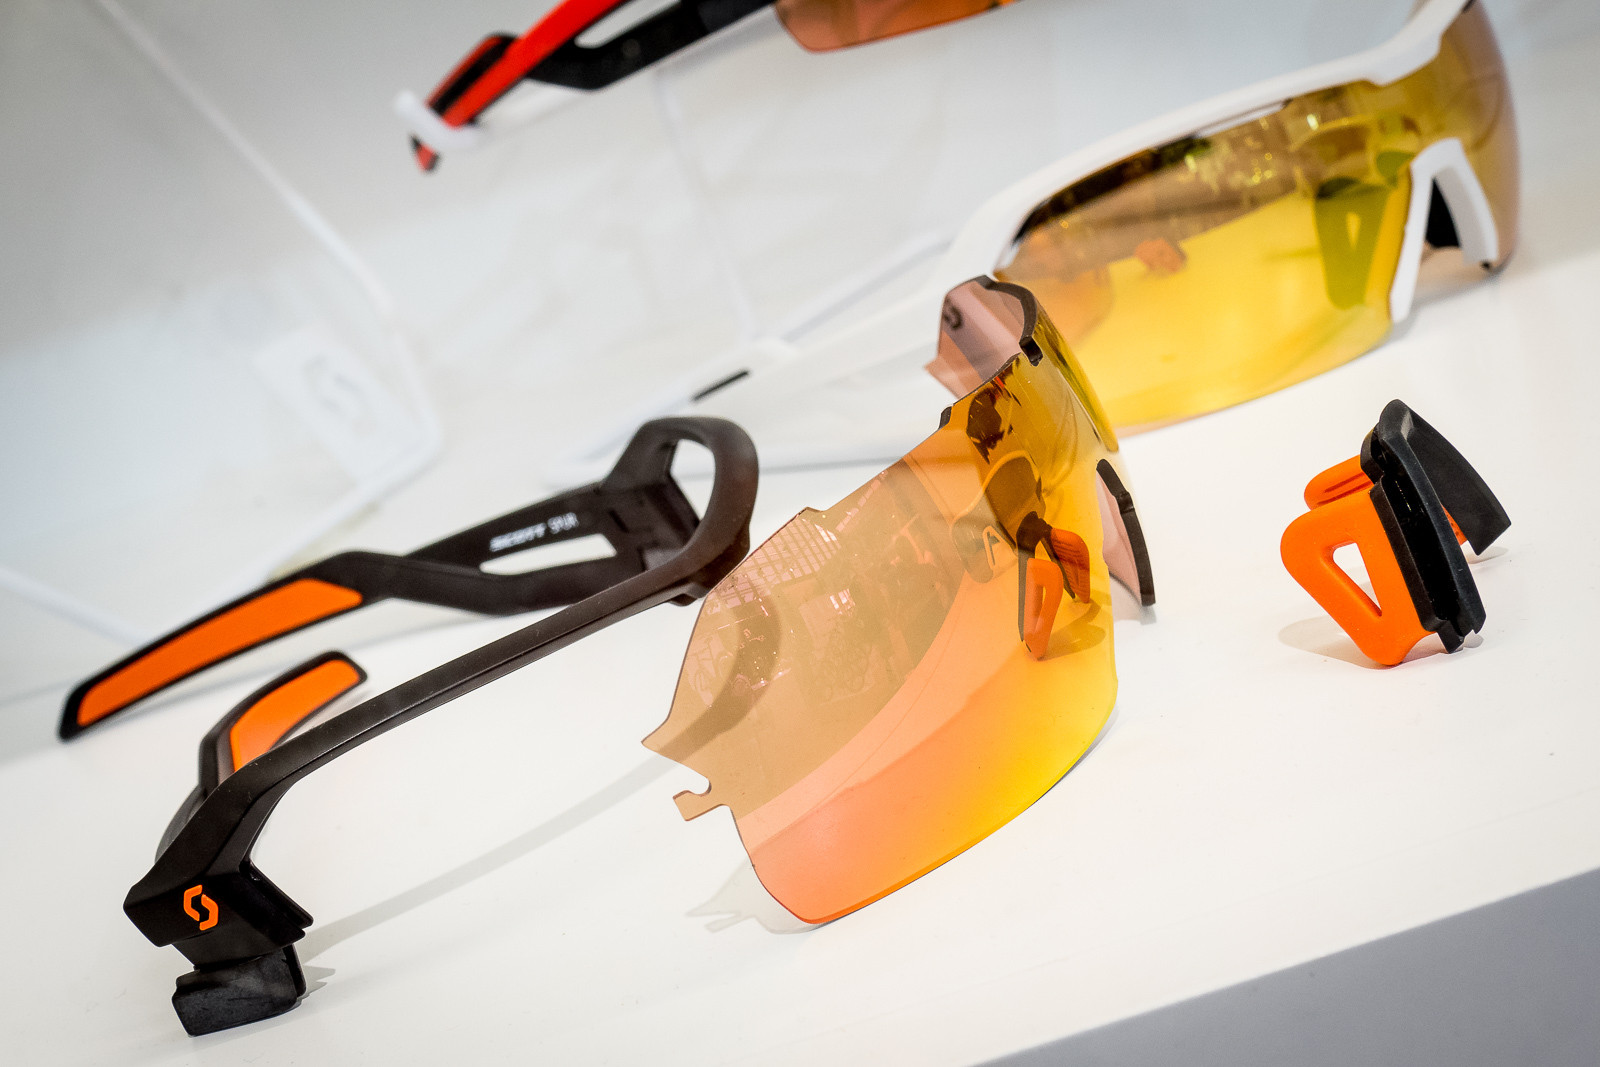 Scott Spur Sunglasses - 2016 Mountain Bike Apparel & Protection at Eurobike - Mountain Biking Pictures - Vital MTB